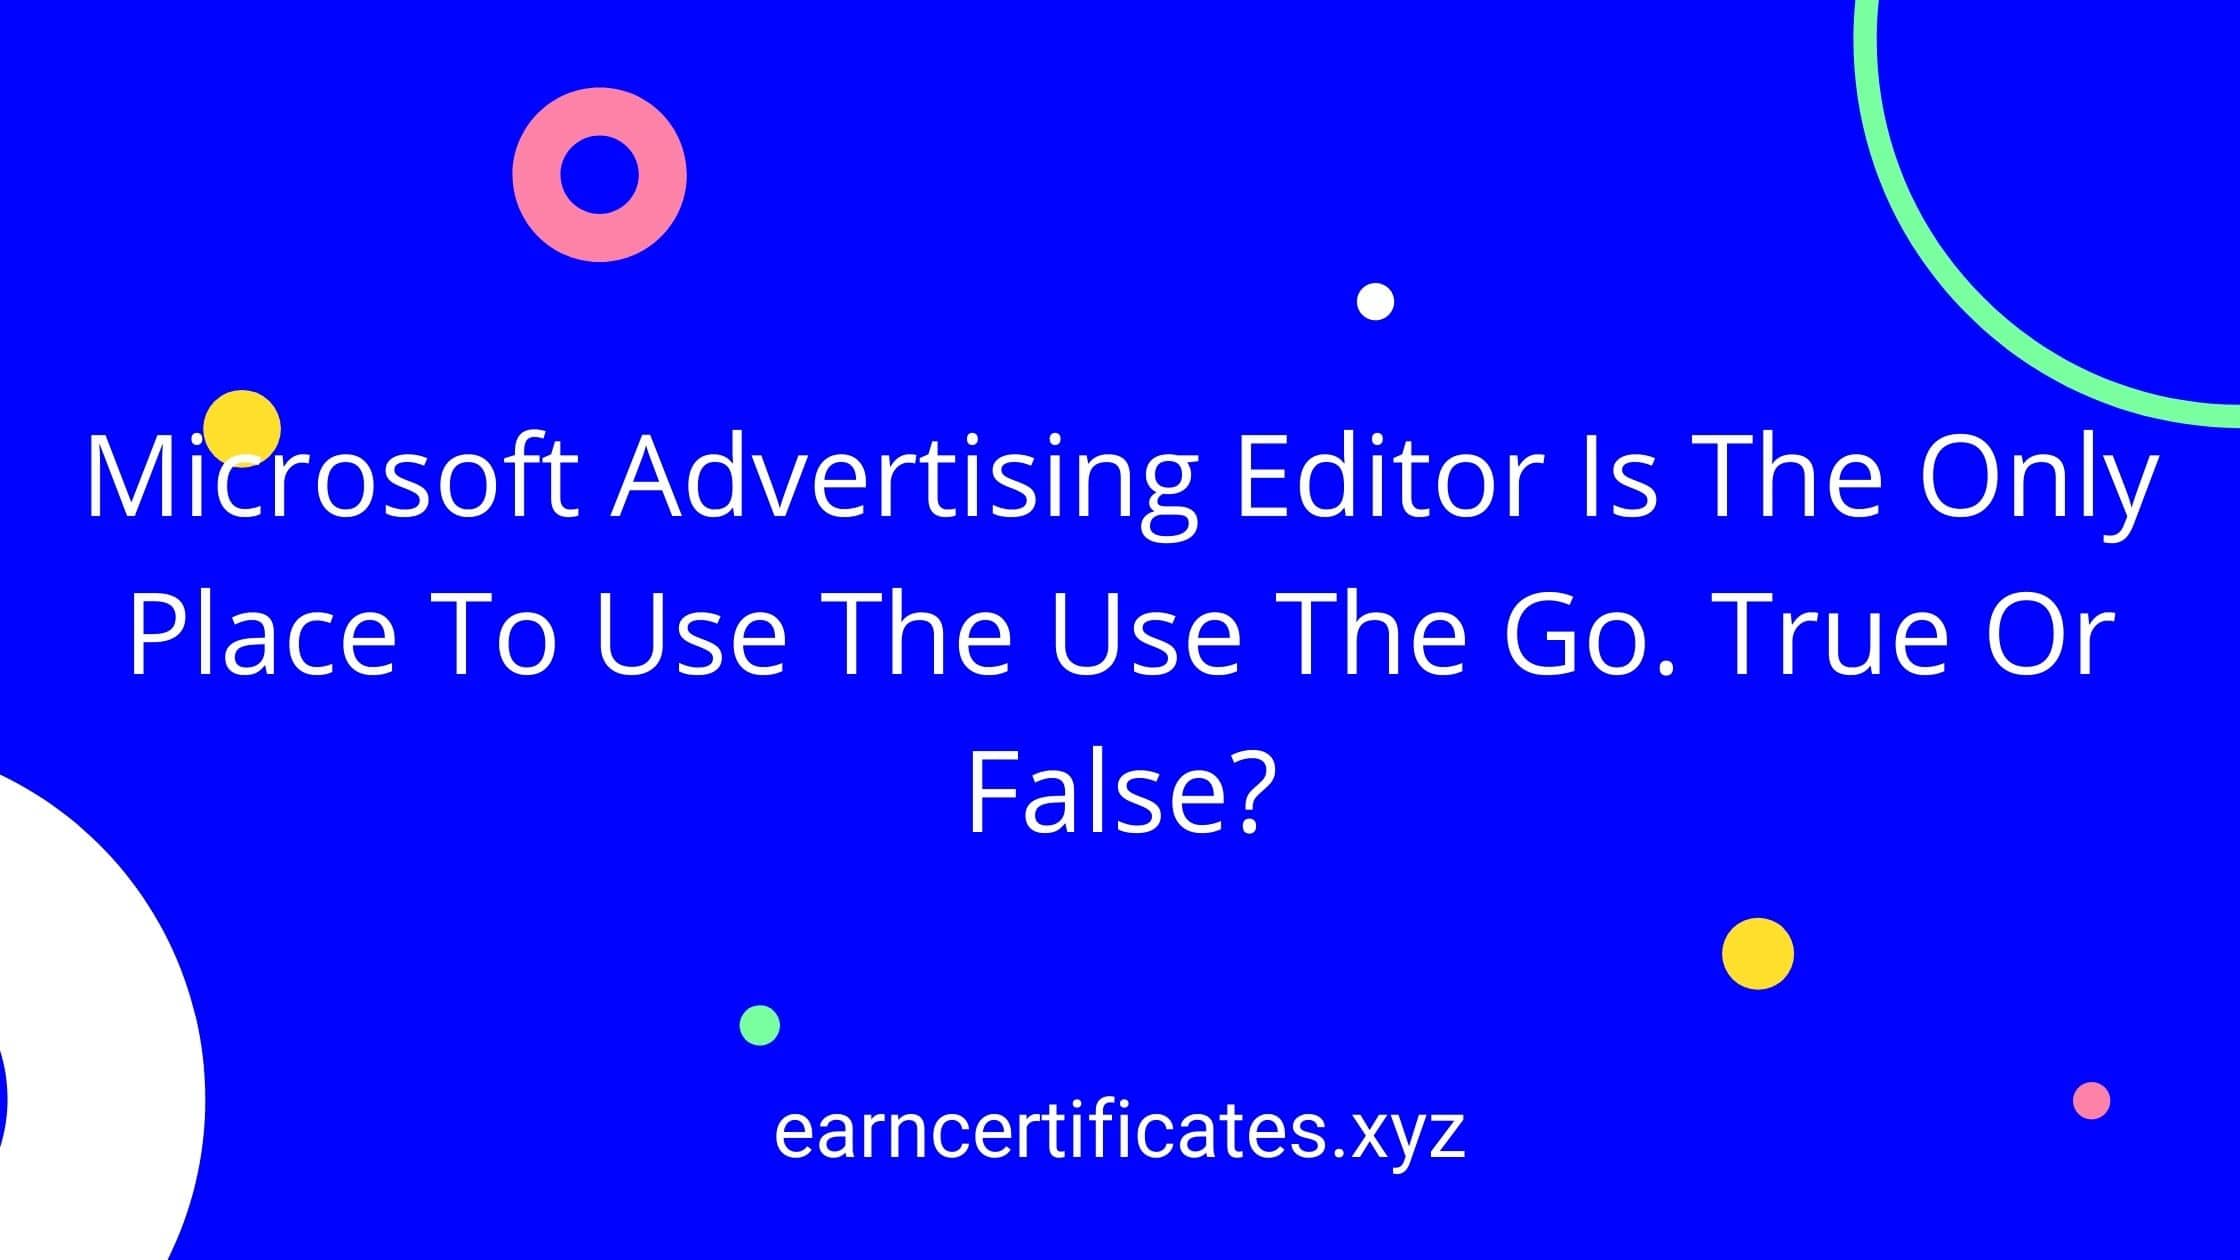 Microsoft Advertising Editor Is The Only Place To Use The Use The Go. True Or False?